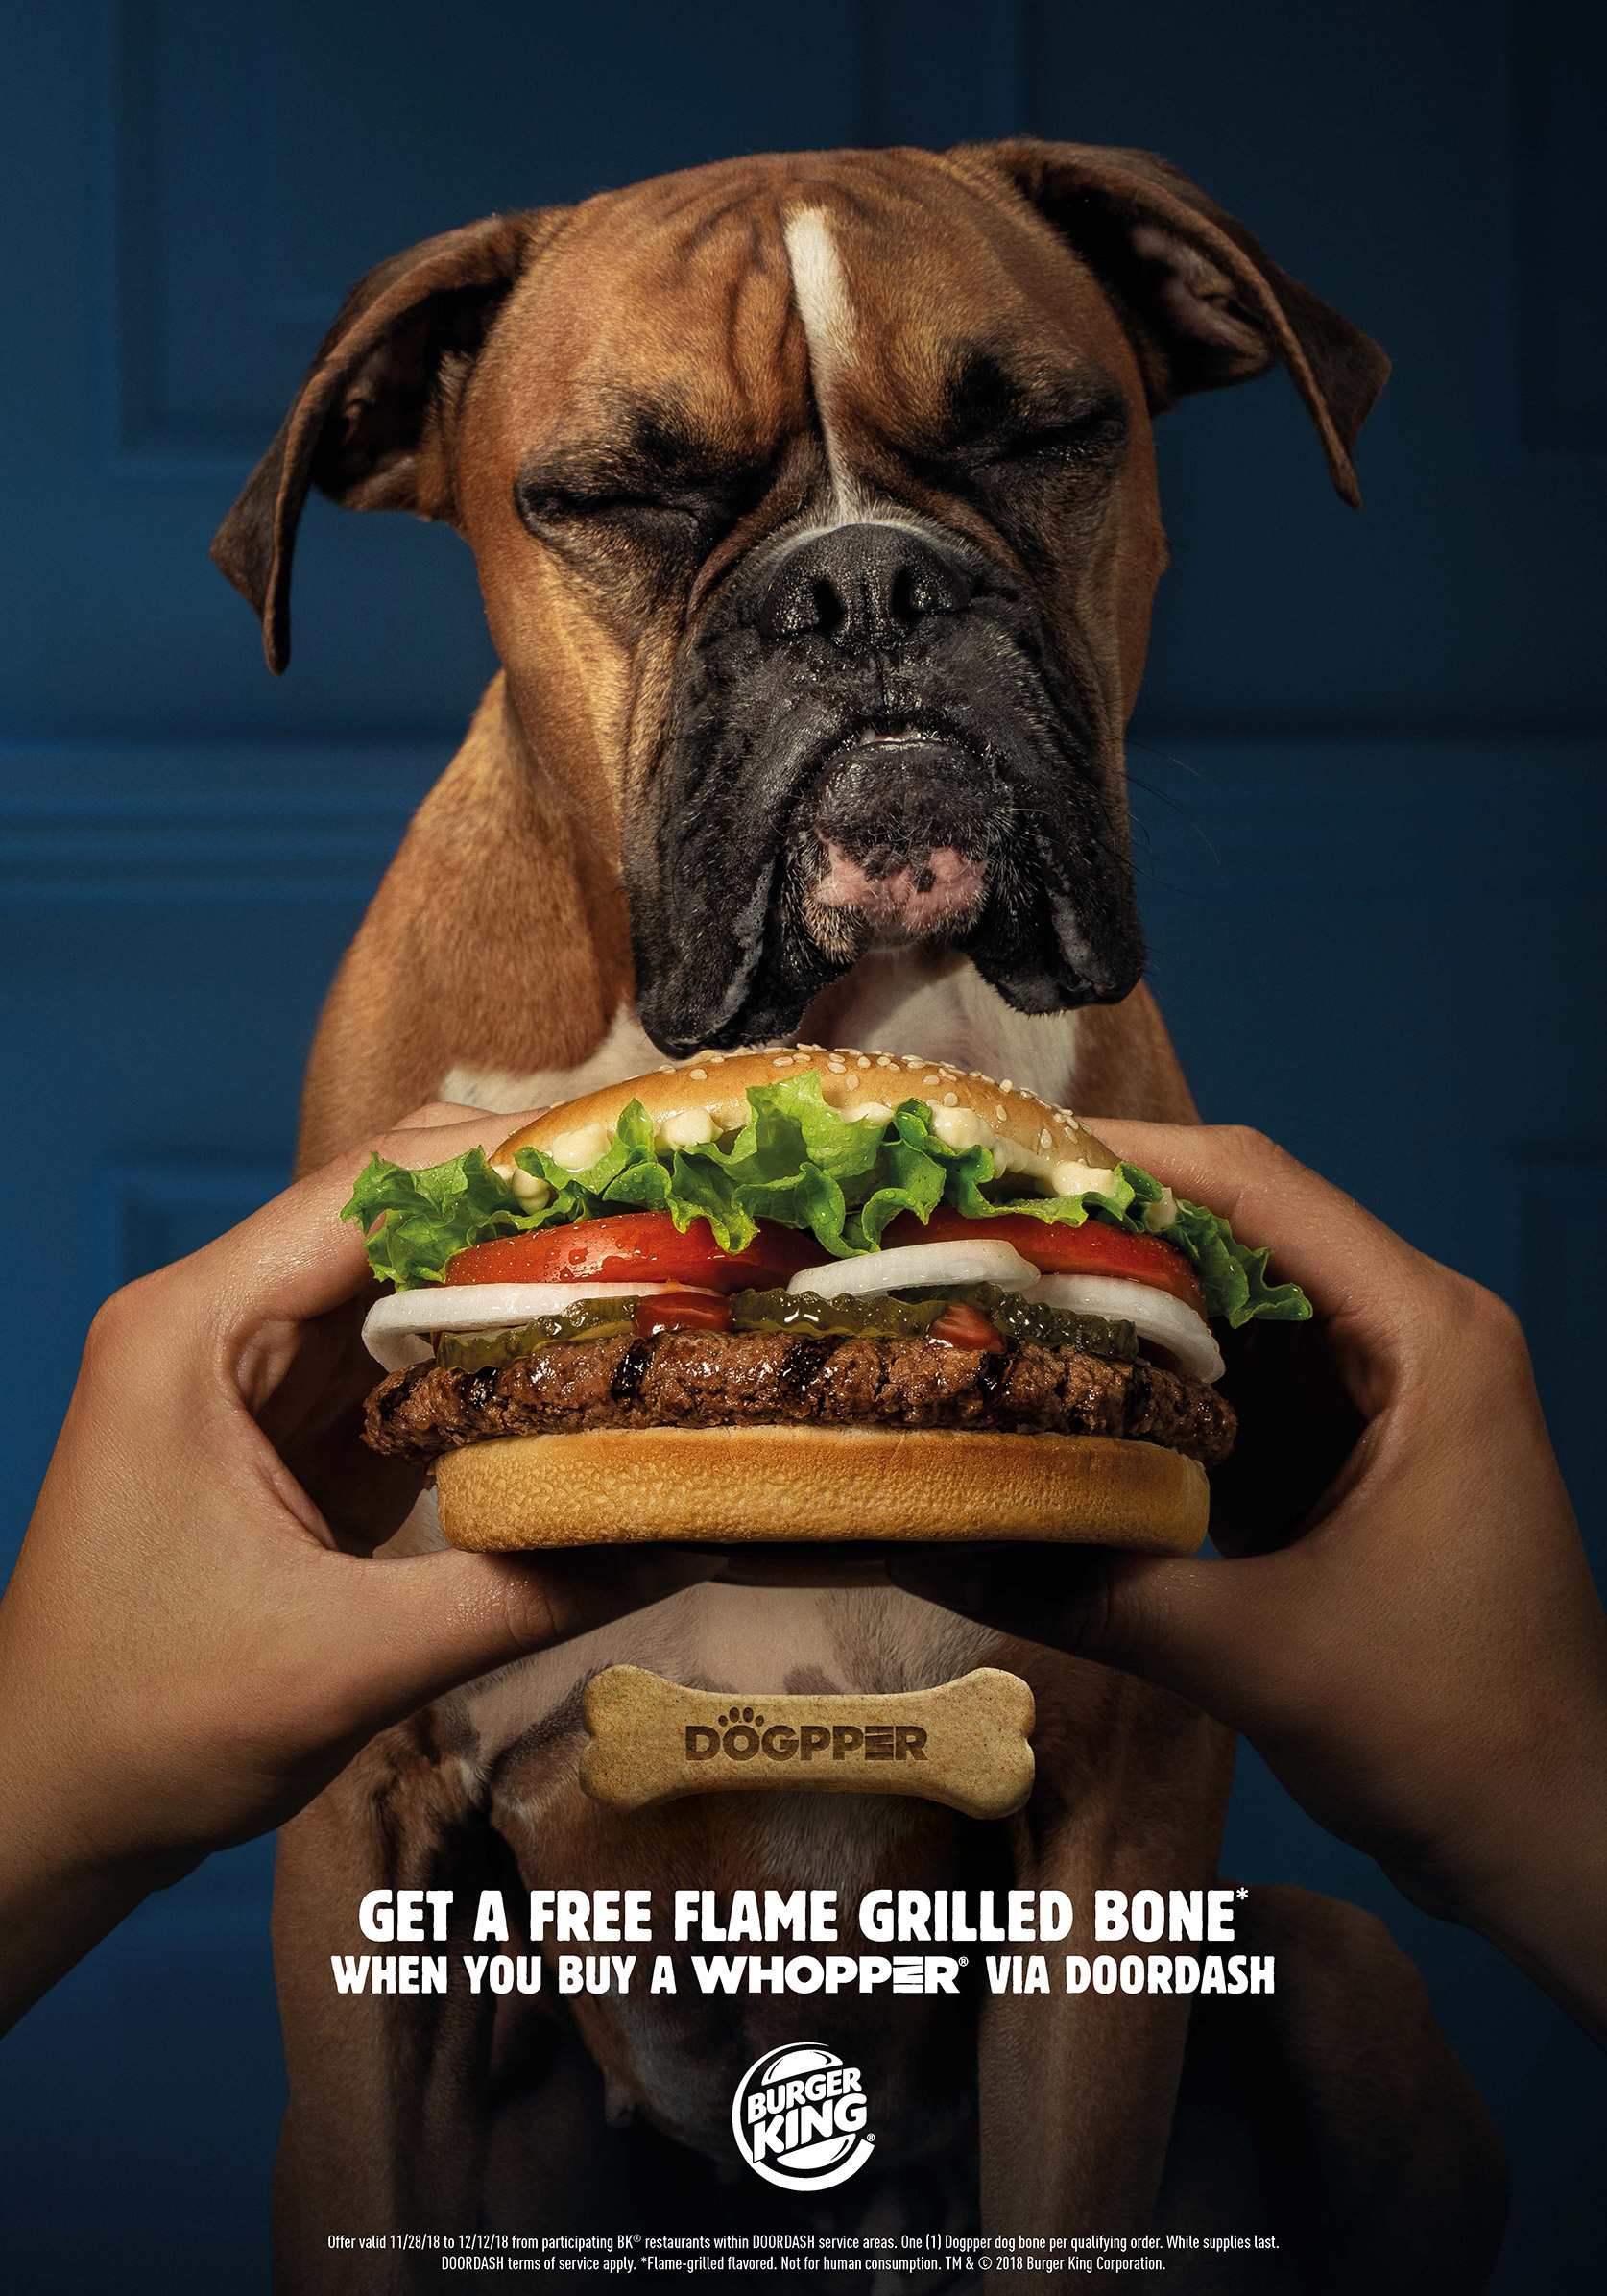 Burger King's food promotion is going to the dogs - UPI com